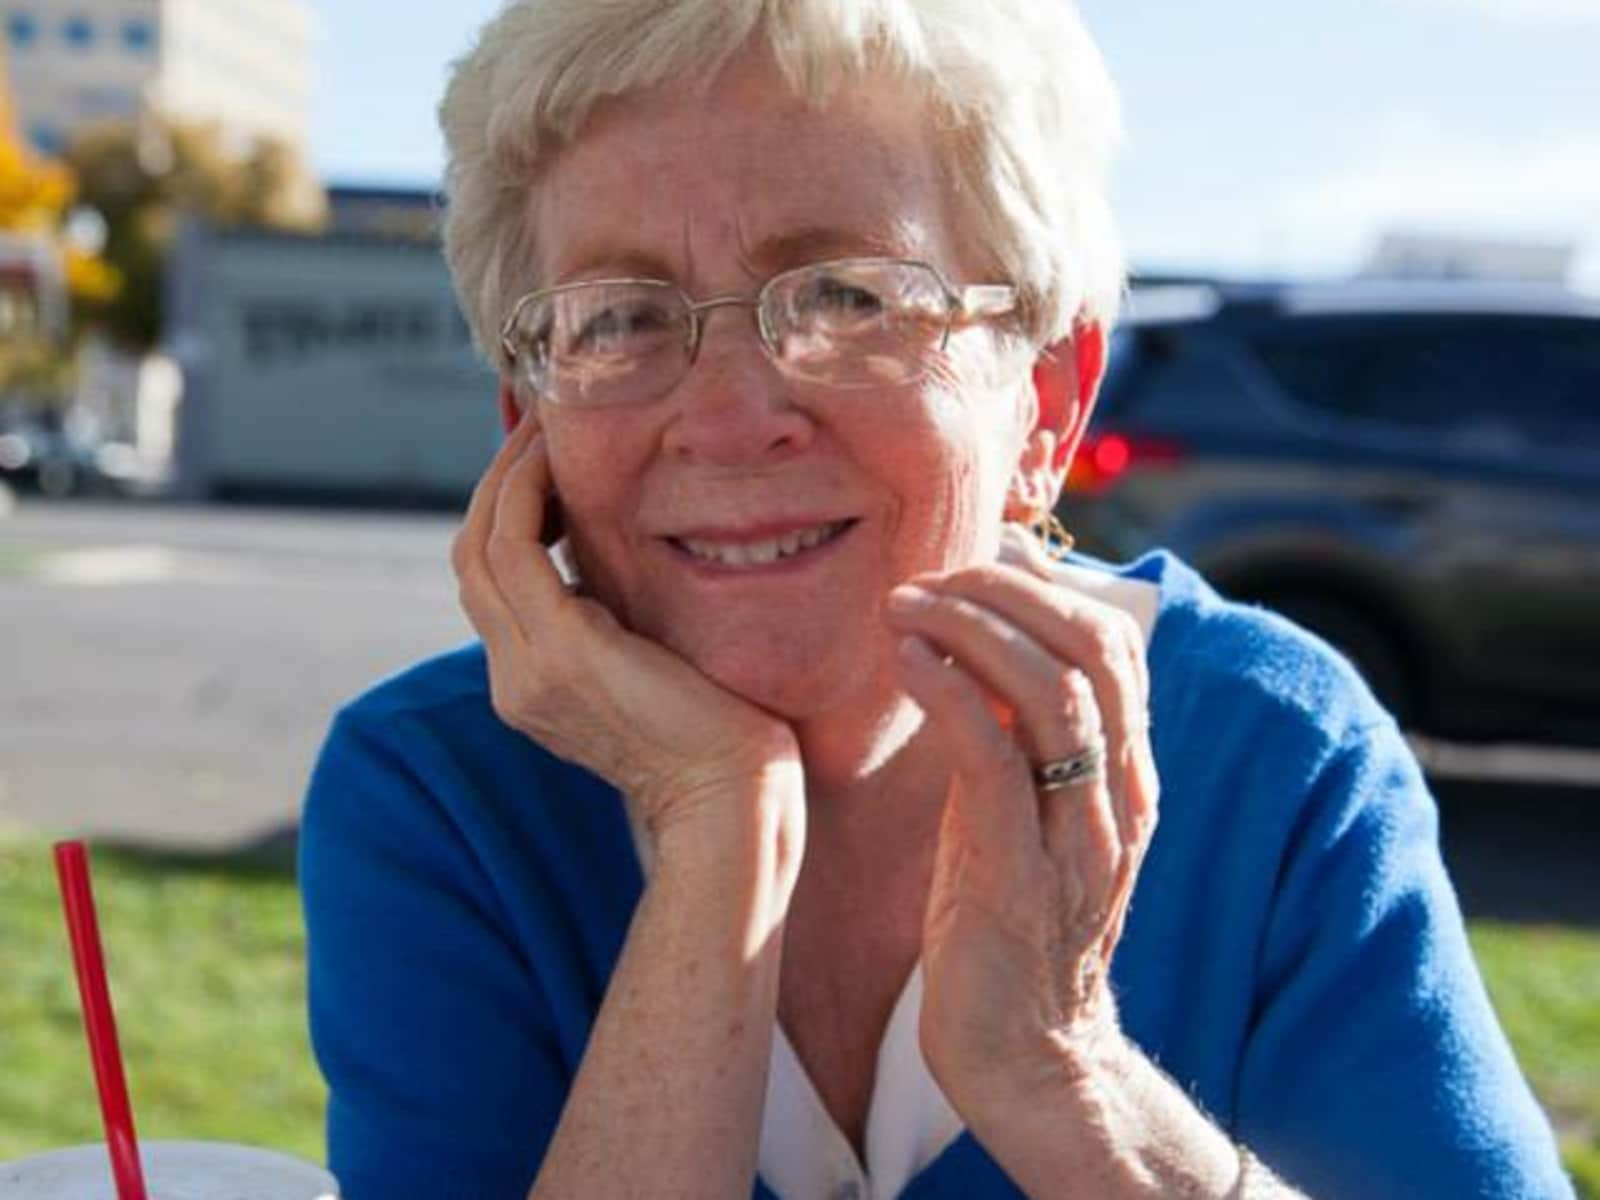 Nona from Provo, Utah, United States